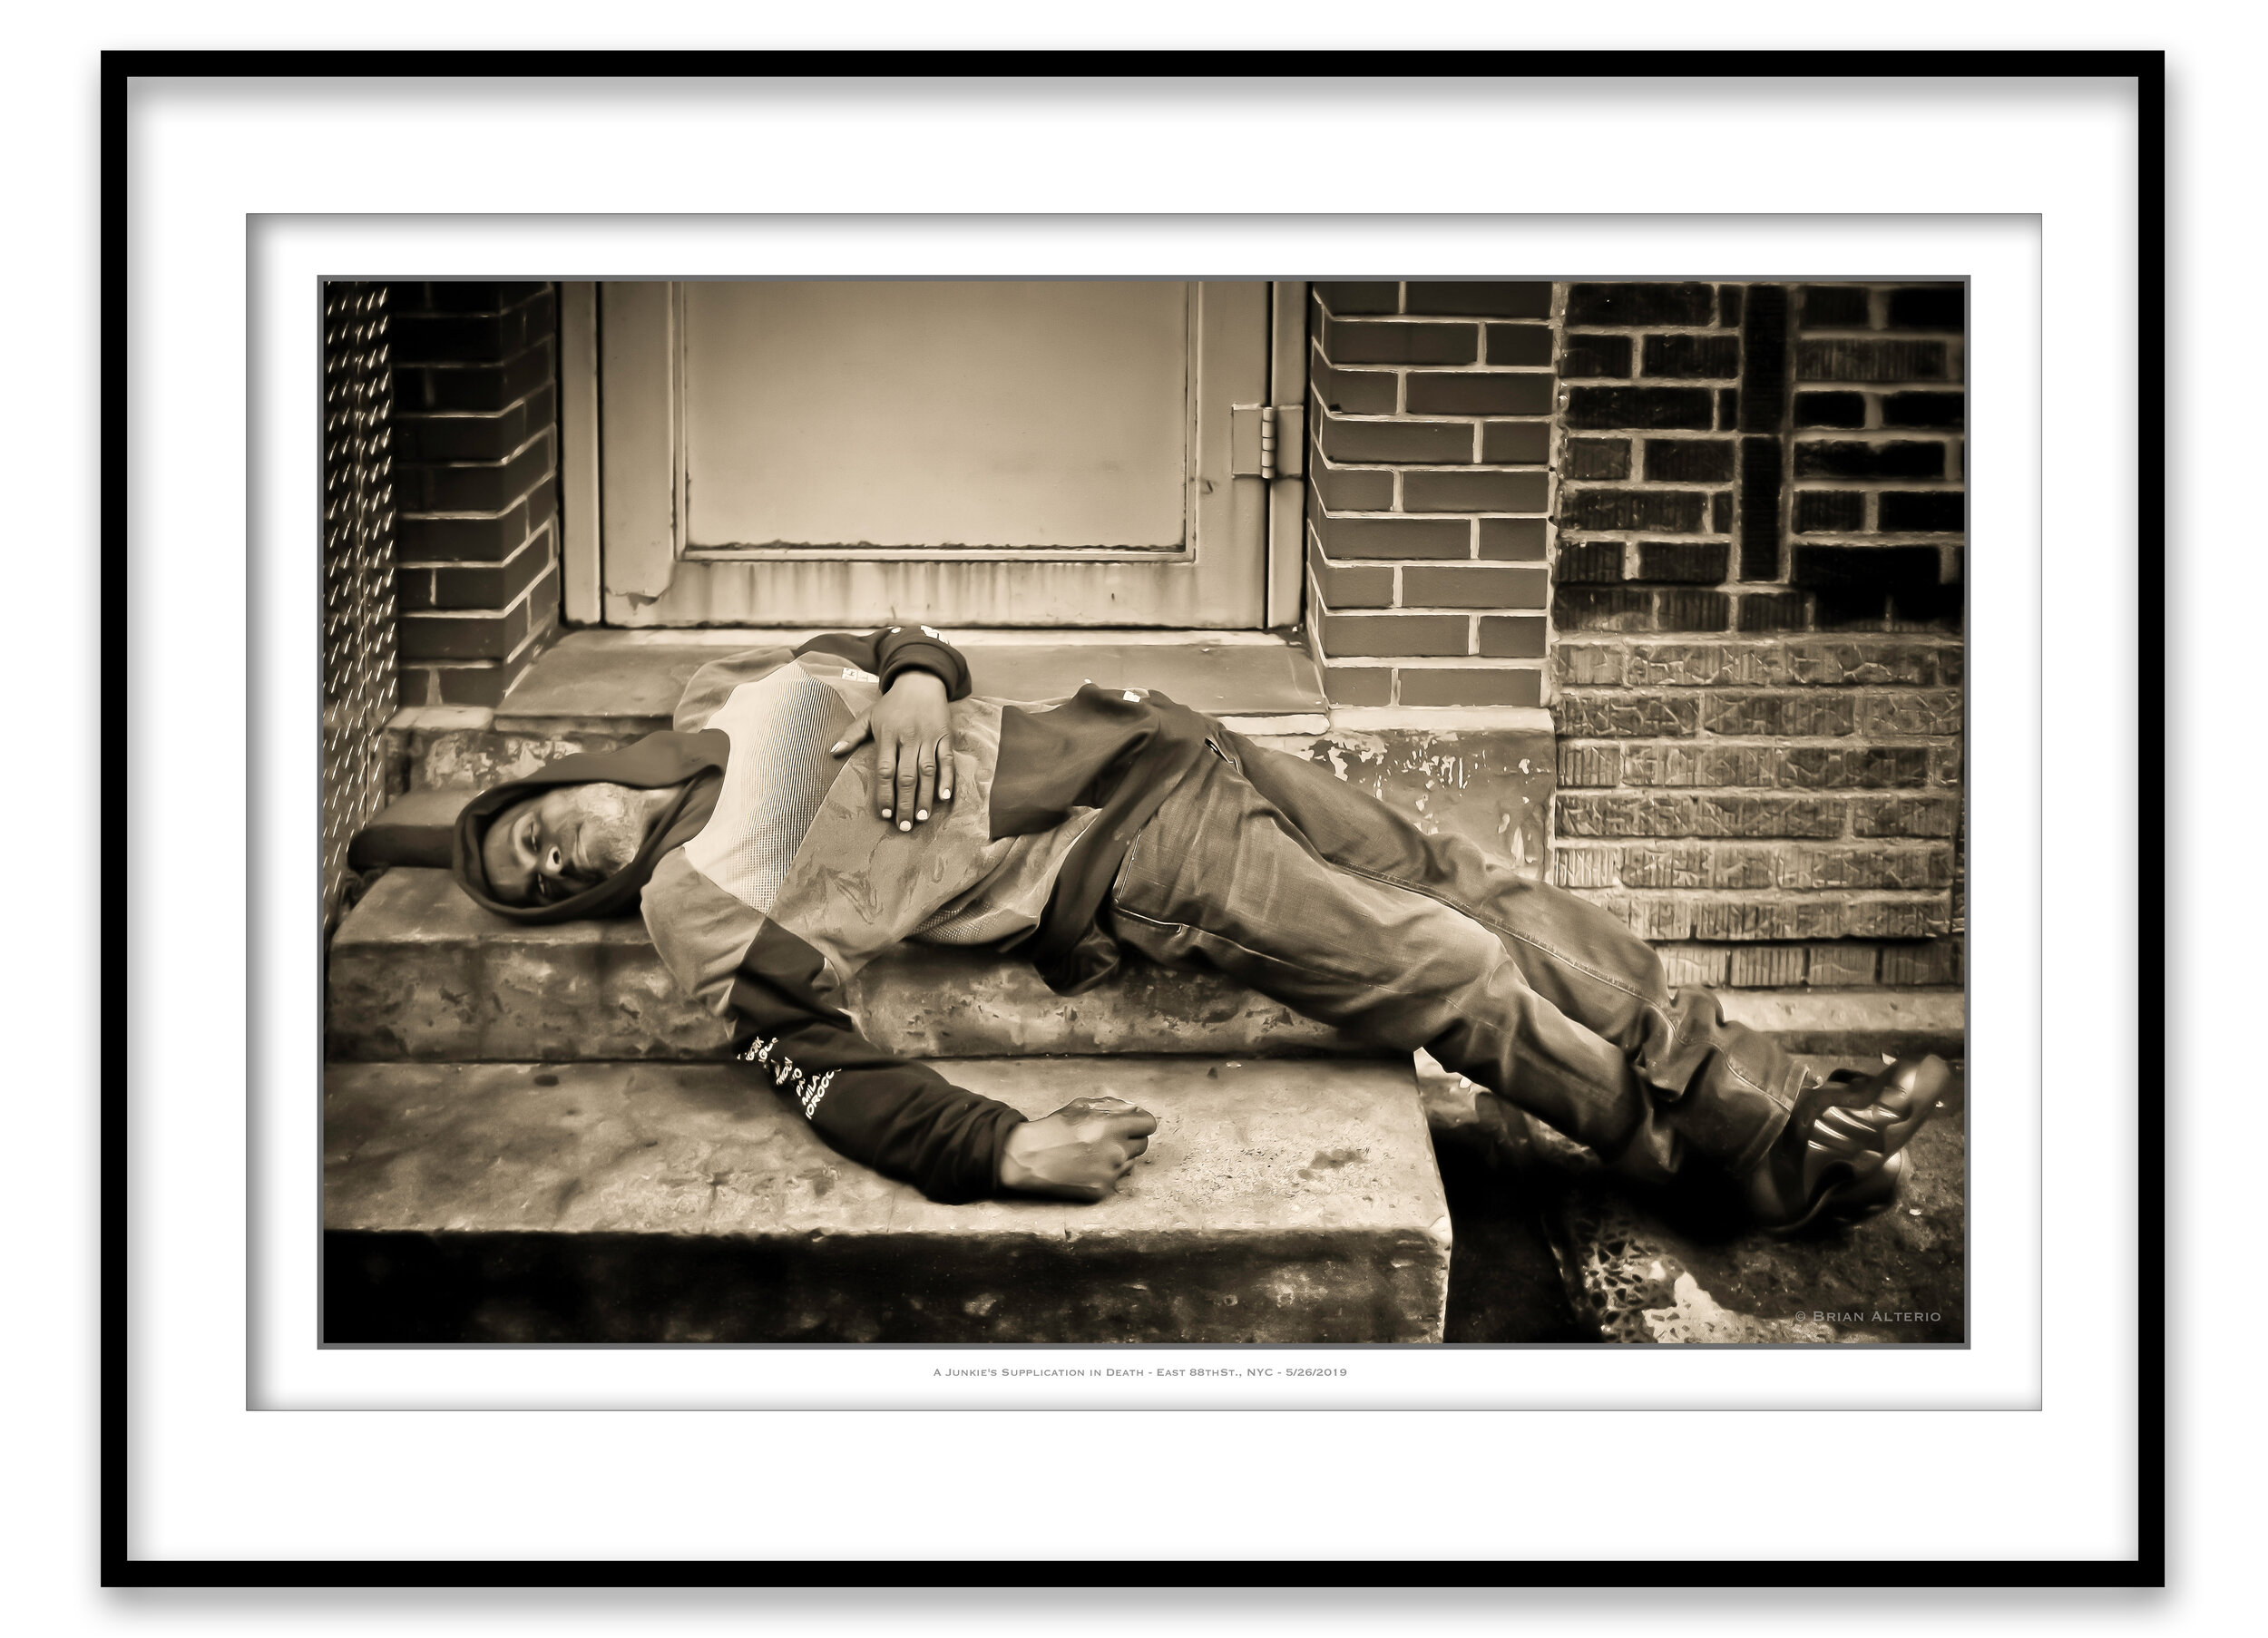 A Junkie's Supplication In Death - East 88thSt., NYC - 5-26-19 Framed.jpg